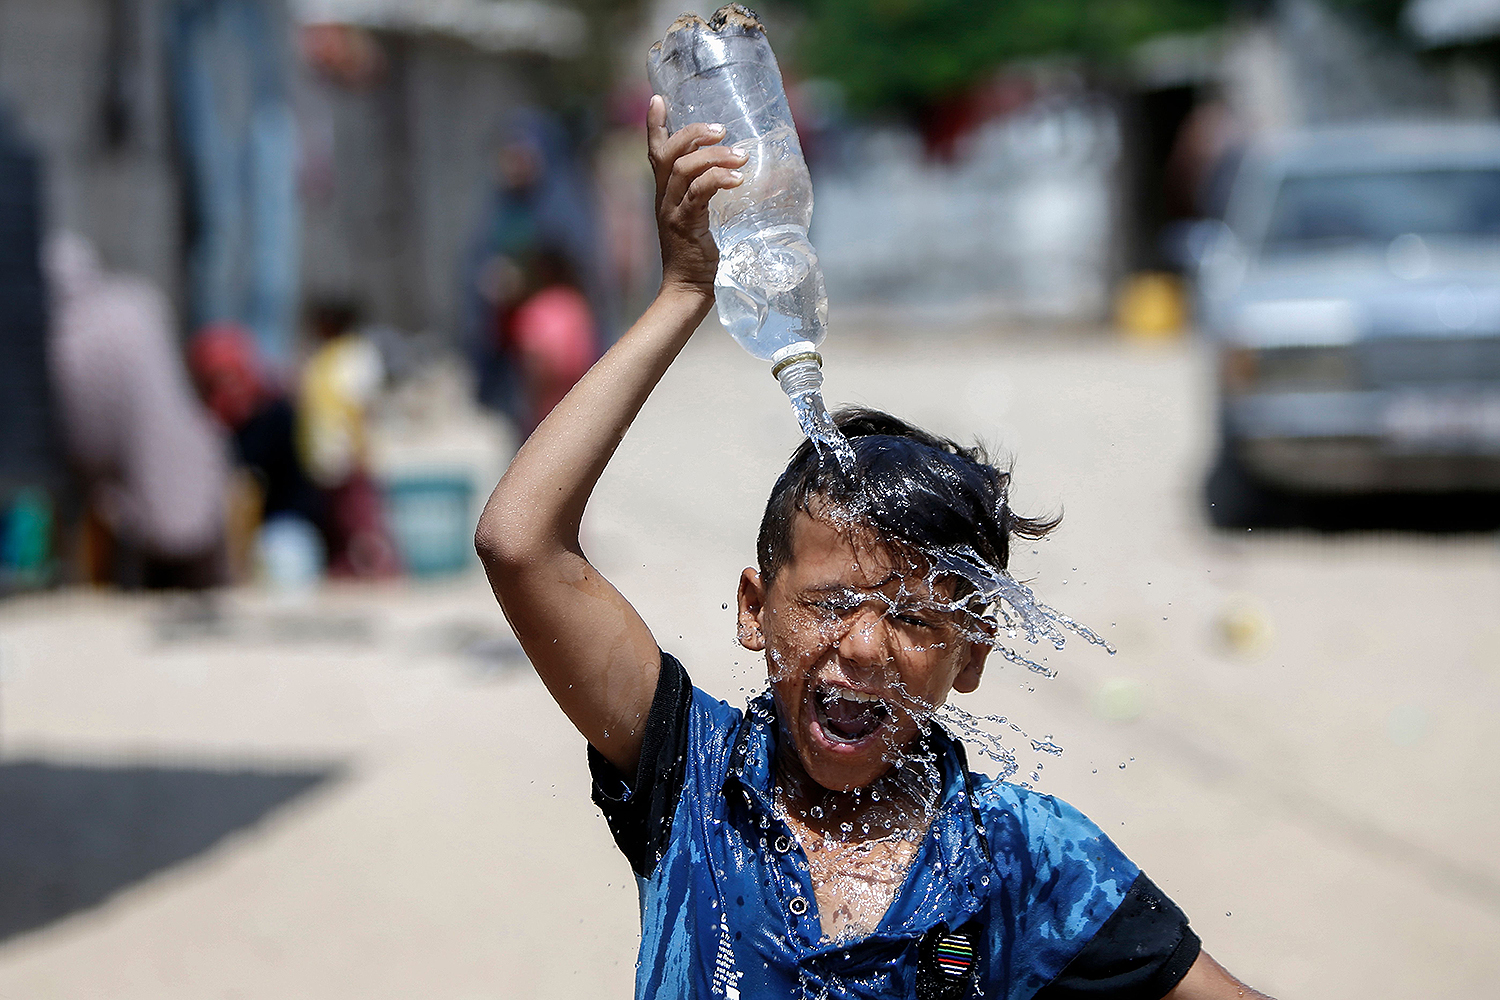 A Palestinian boy pours water over his head in Khan Yunis in the southern Gaza Strip on July 22. MOHAMMED ABED/AFP via Getty Images